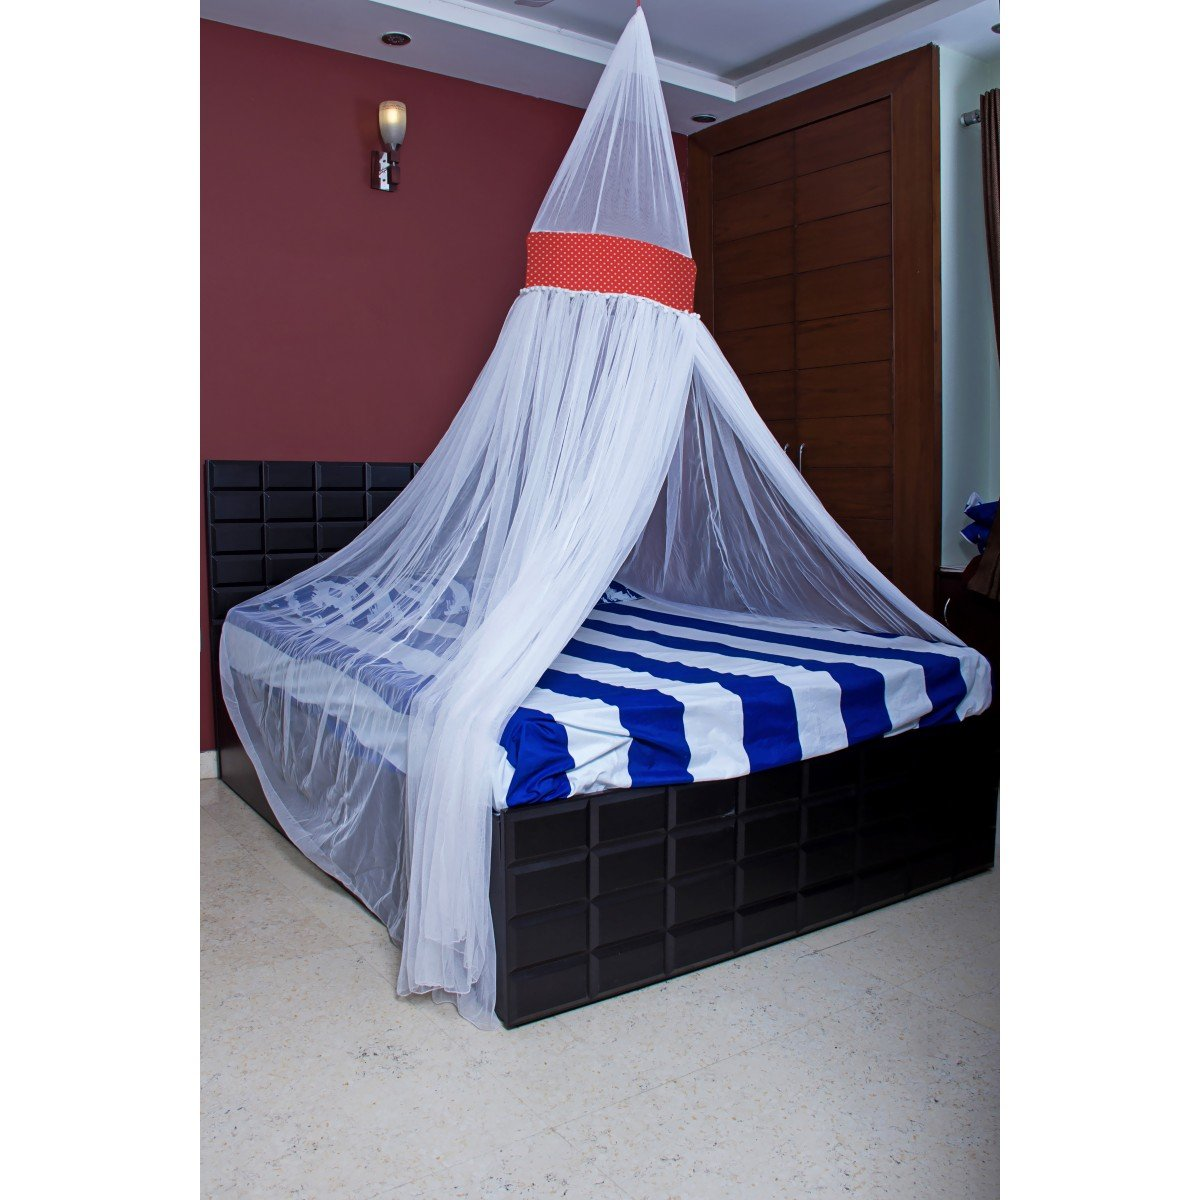 Mosquito Nets - King Size Premium Mosquito Net Canopy for